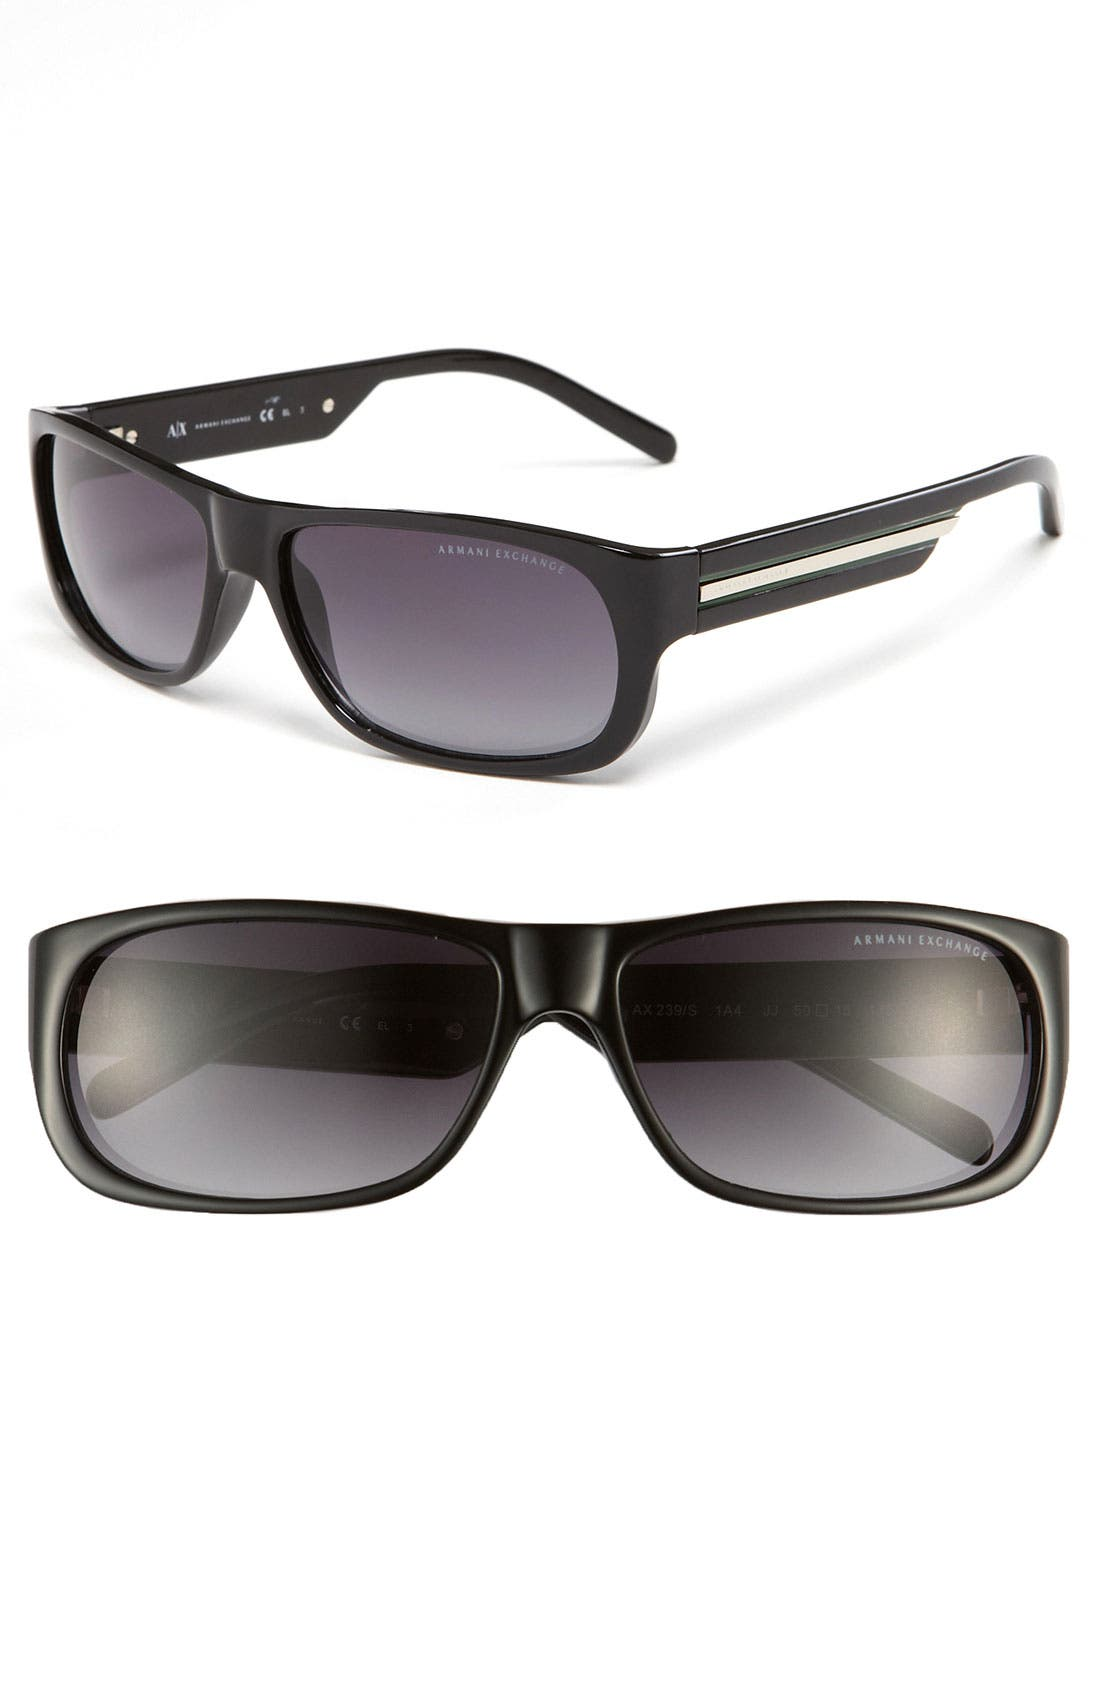 Alternate Image 1 Selected - AX Armani Exchange Sunglasses